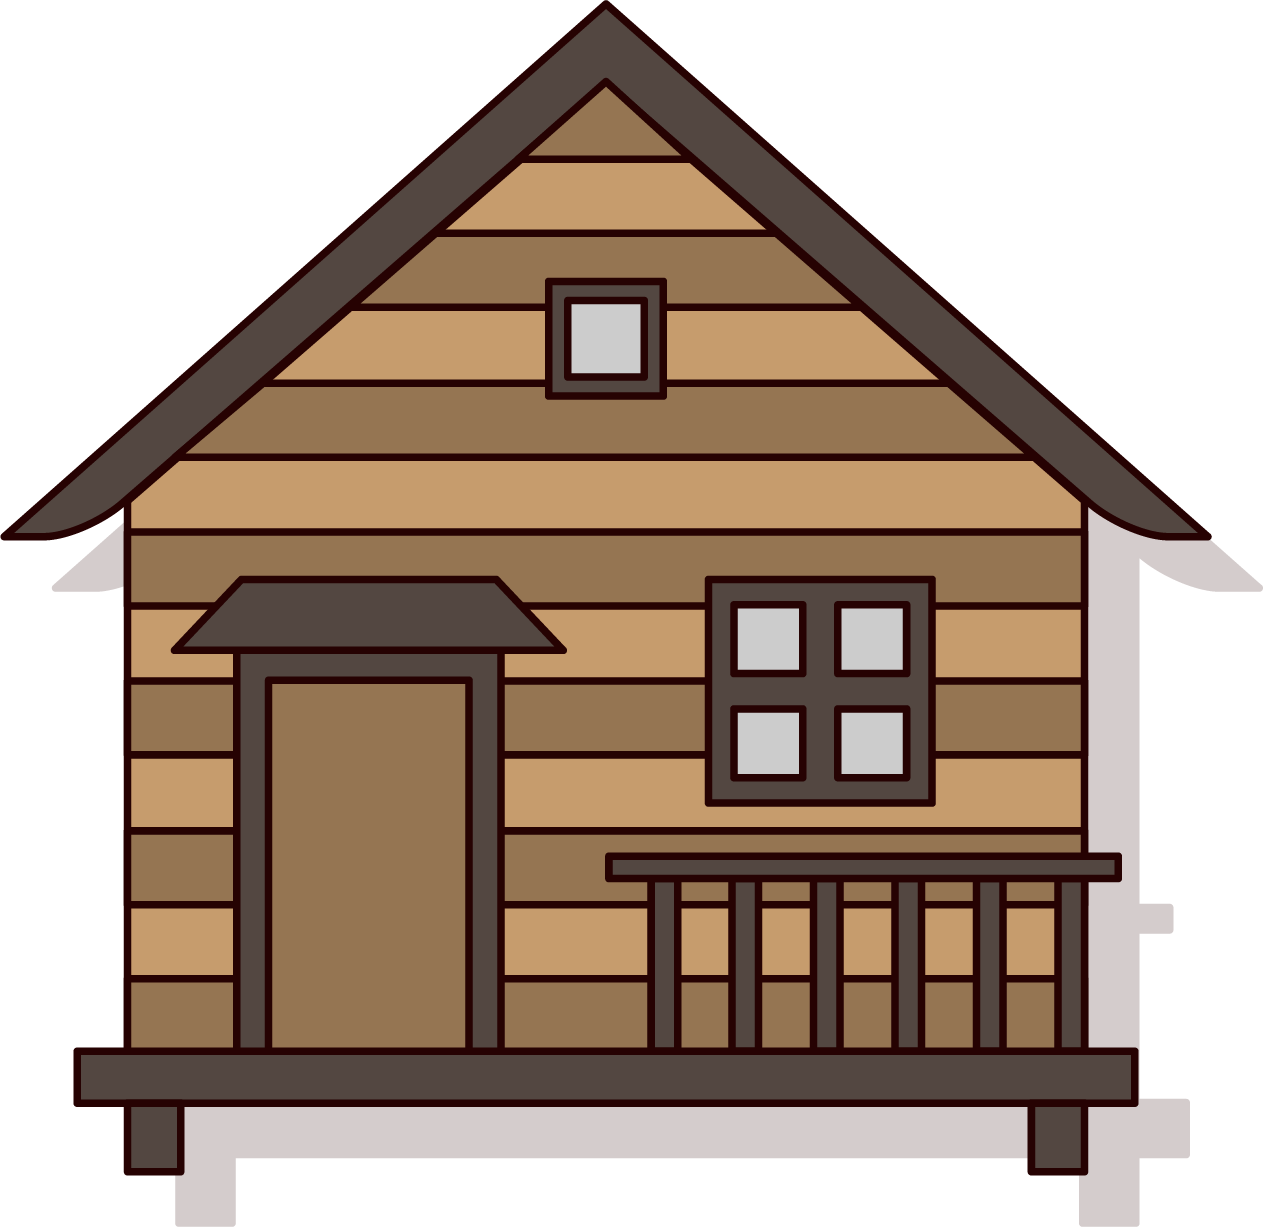 Download log house forest. Cabin clipart hut